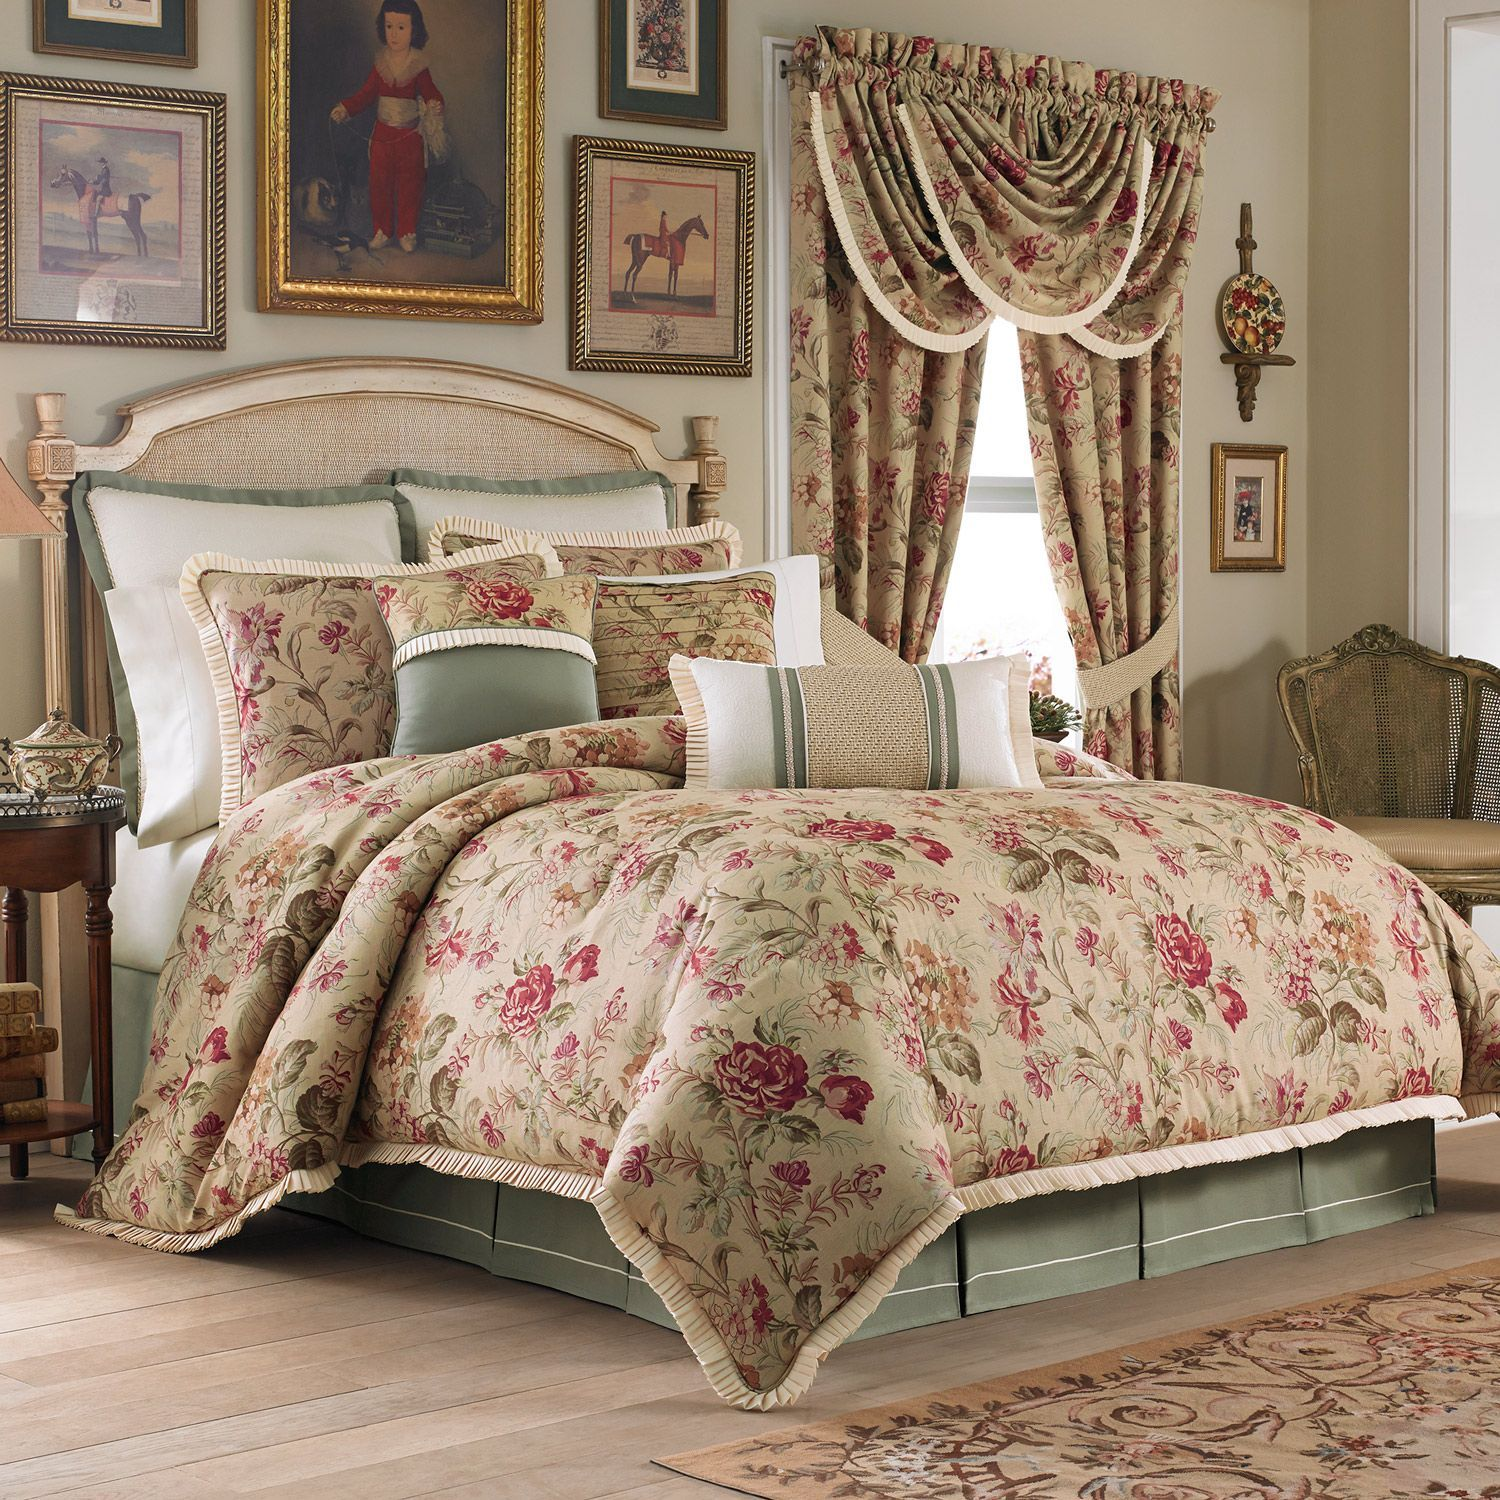 dusty com the northern nights reversible bed for rose jacquard ensembles comforter bedding n home qvc c set twin piece sets